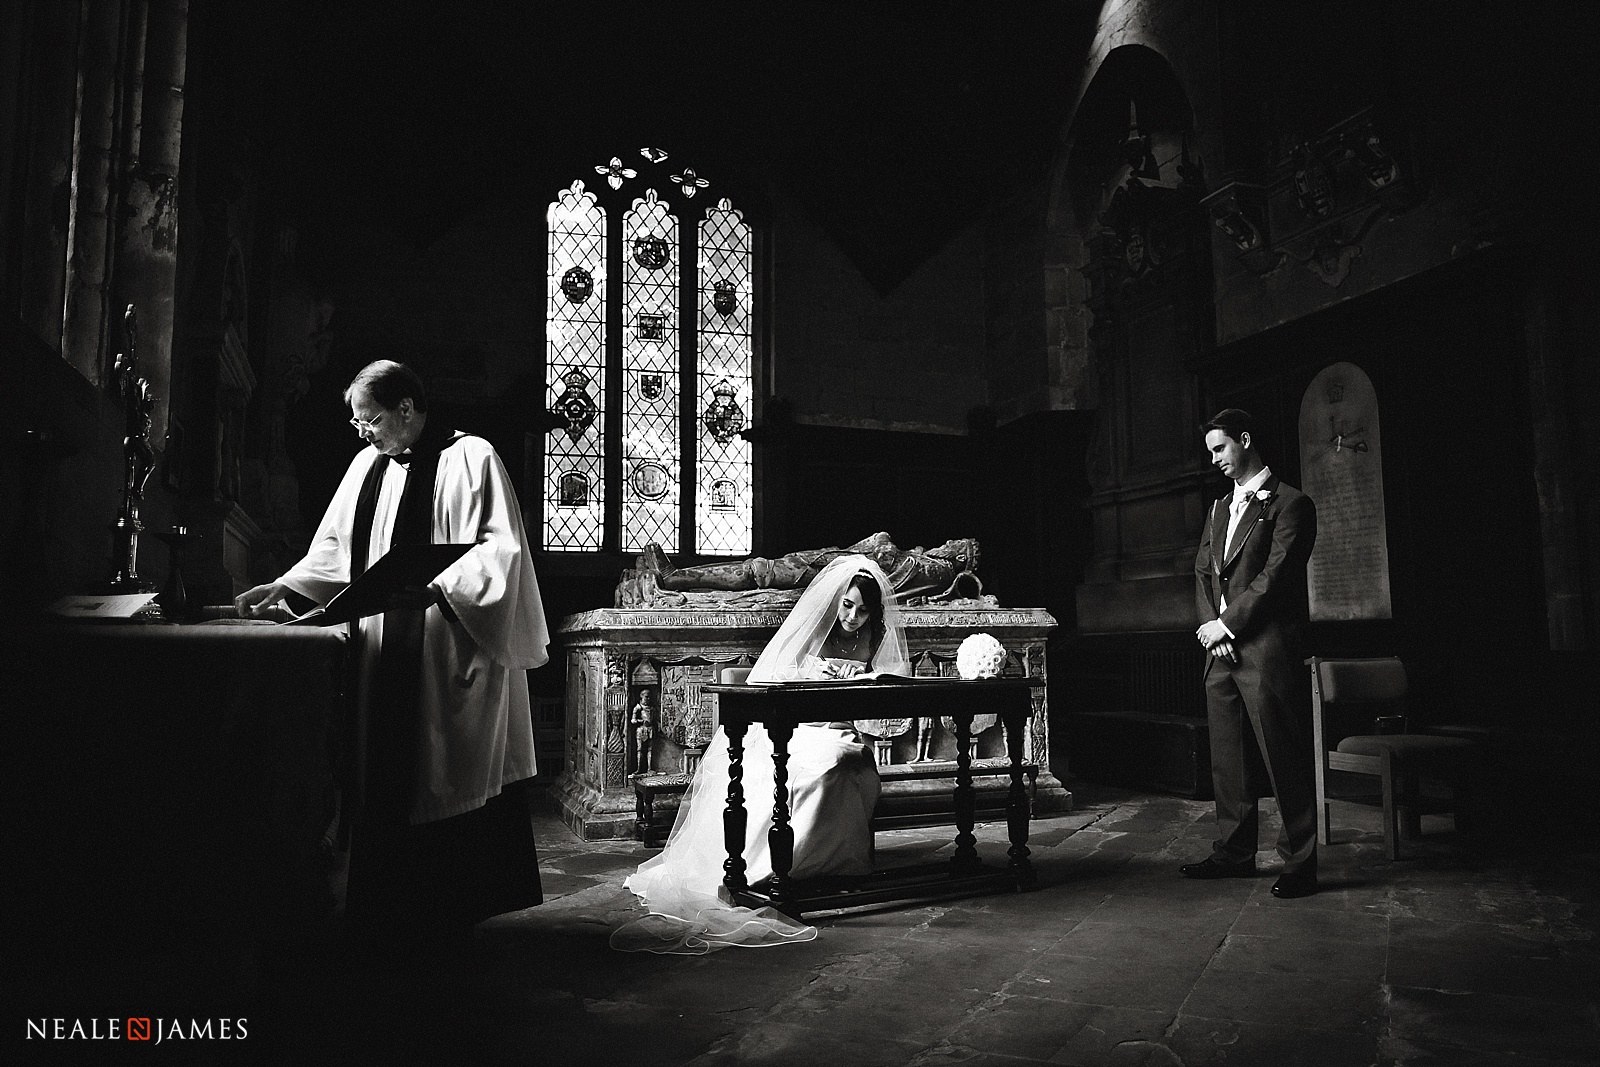 A monochrome picture of a register being signed in church